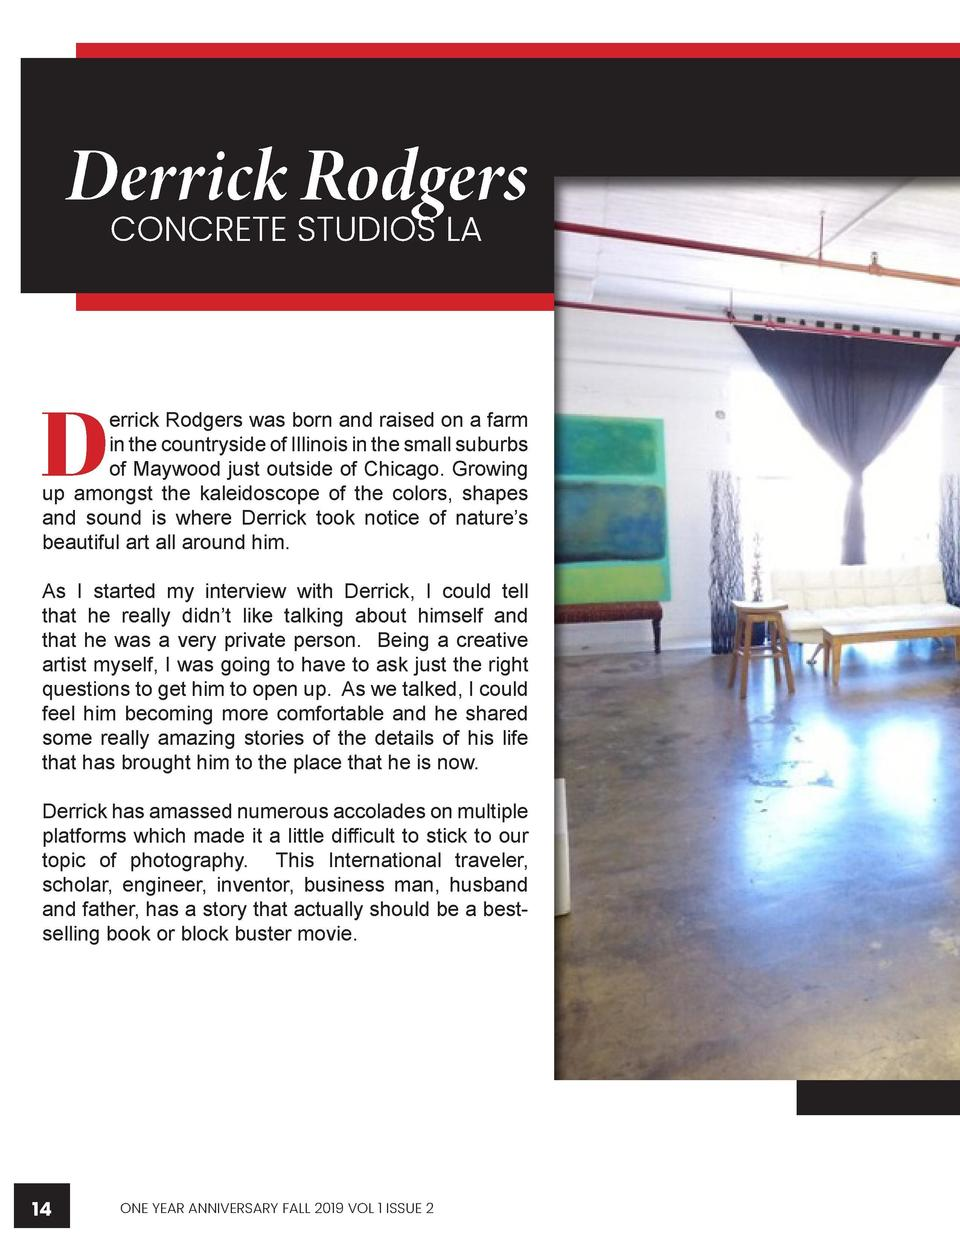 WWWW.CREATIVEARTISTMAGAZINE.COM  Derrick Rodgers CONCRETE STUDIOS LA  D  errick Rodgers was born and raised on a farm in t...